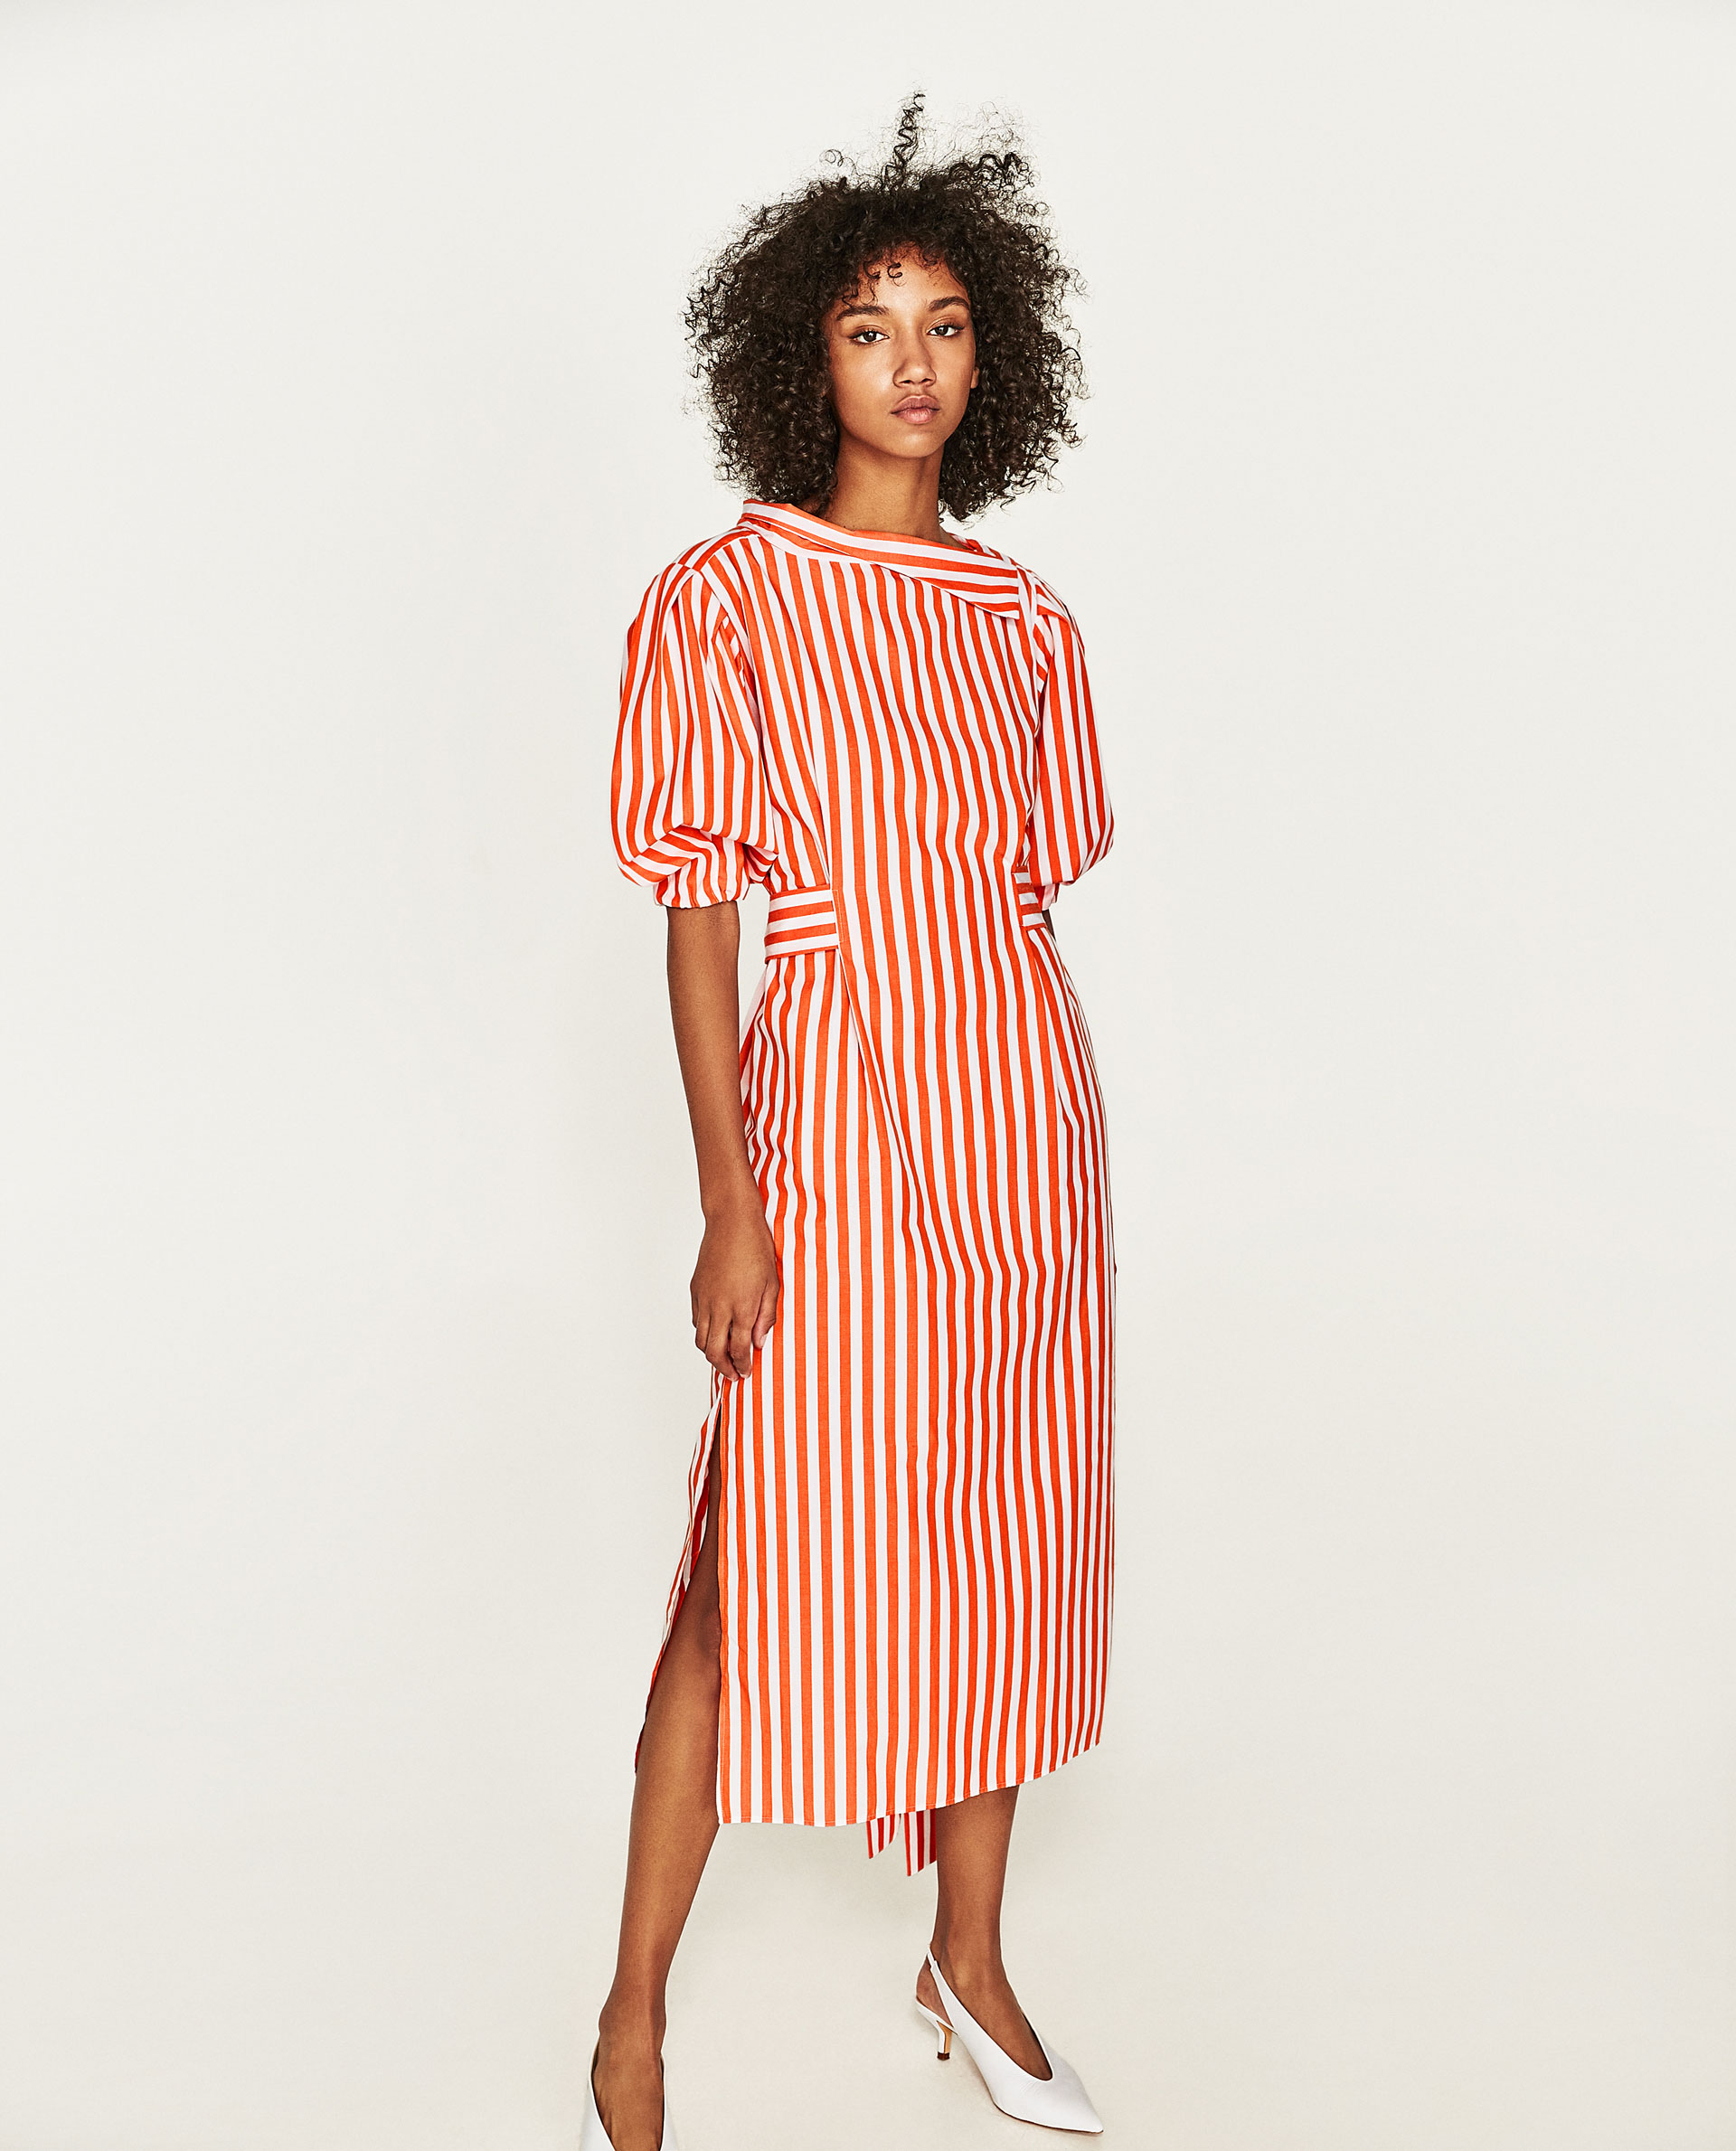 Smart Summer Dresses You Can Legit Wear to Work